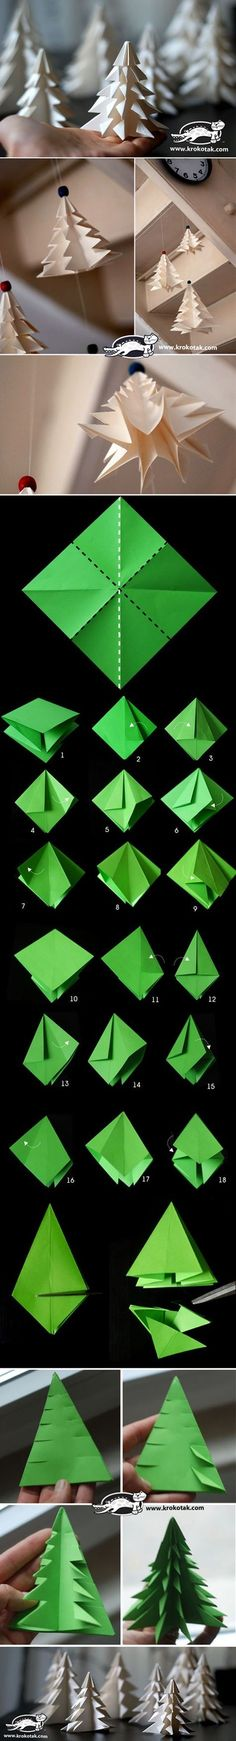 DIY Paper Christmas Tree To Decorate Your Rooms Instead of buying Christmas tree, you can make some paper Christmas tree with different colors to decorate your rooms. The steps are pretty simple - DIY Paper Christmas Tree Diy Paper Christmas Tree, Noel Christmas, Christmas Projects, Holiday Crafts, Christmas Ornaments, Christmas Origami, Salt Dough Christmas Decorations, Create Christmas Cards, Christmas Tree Star